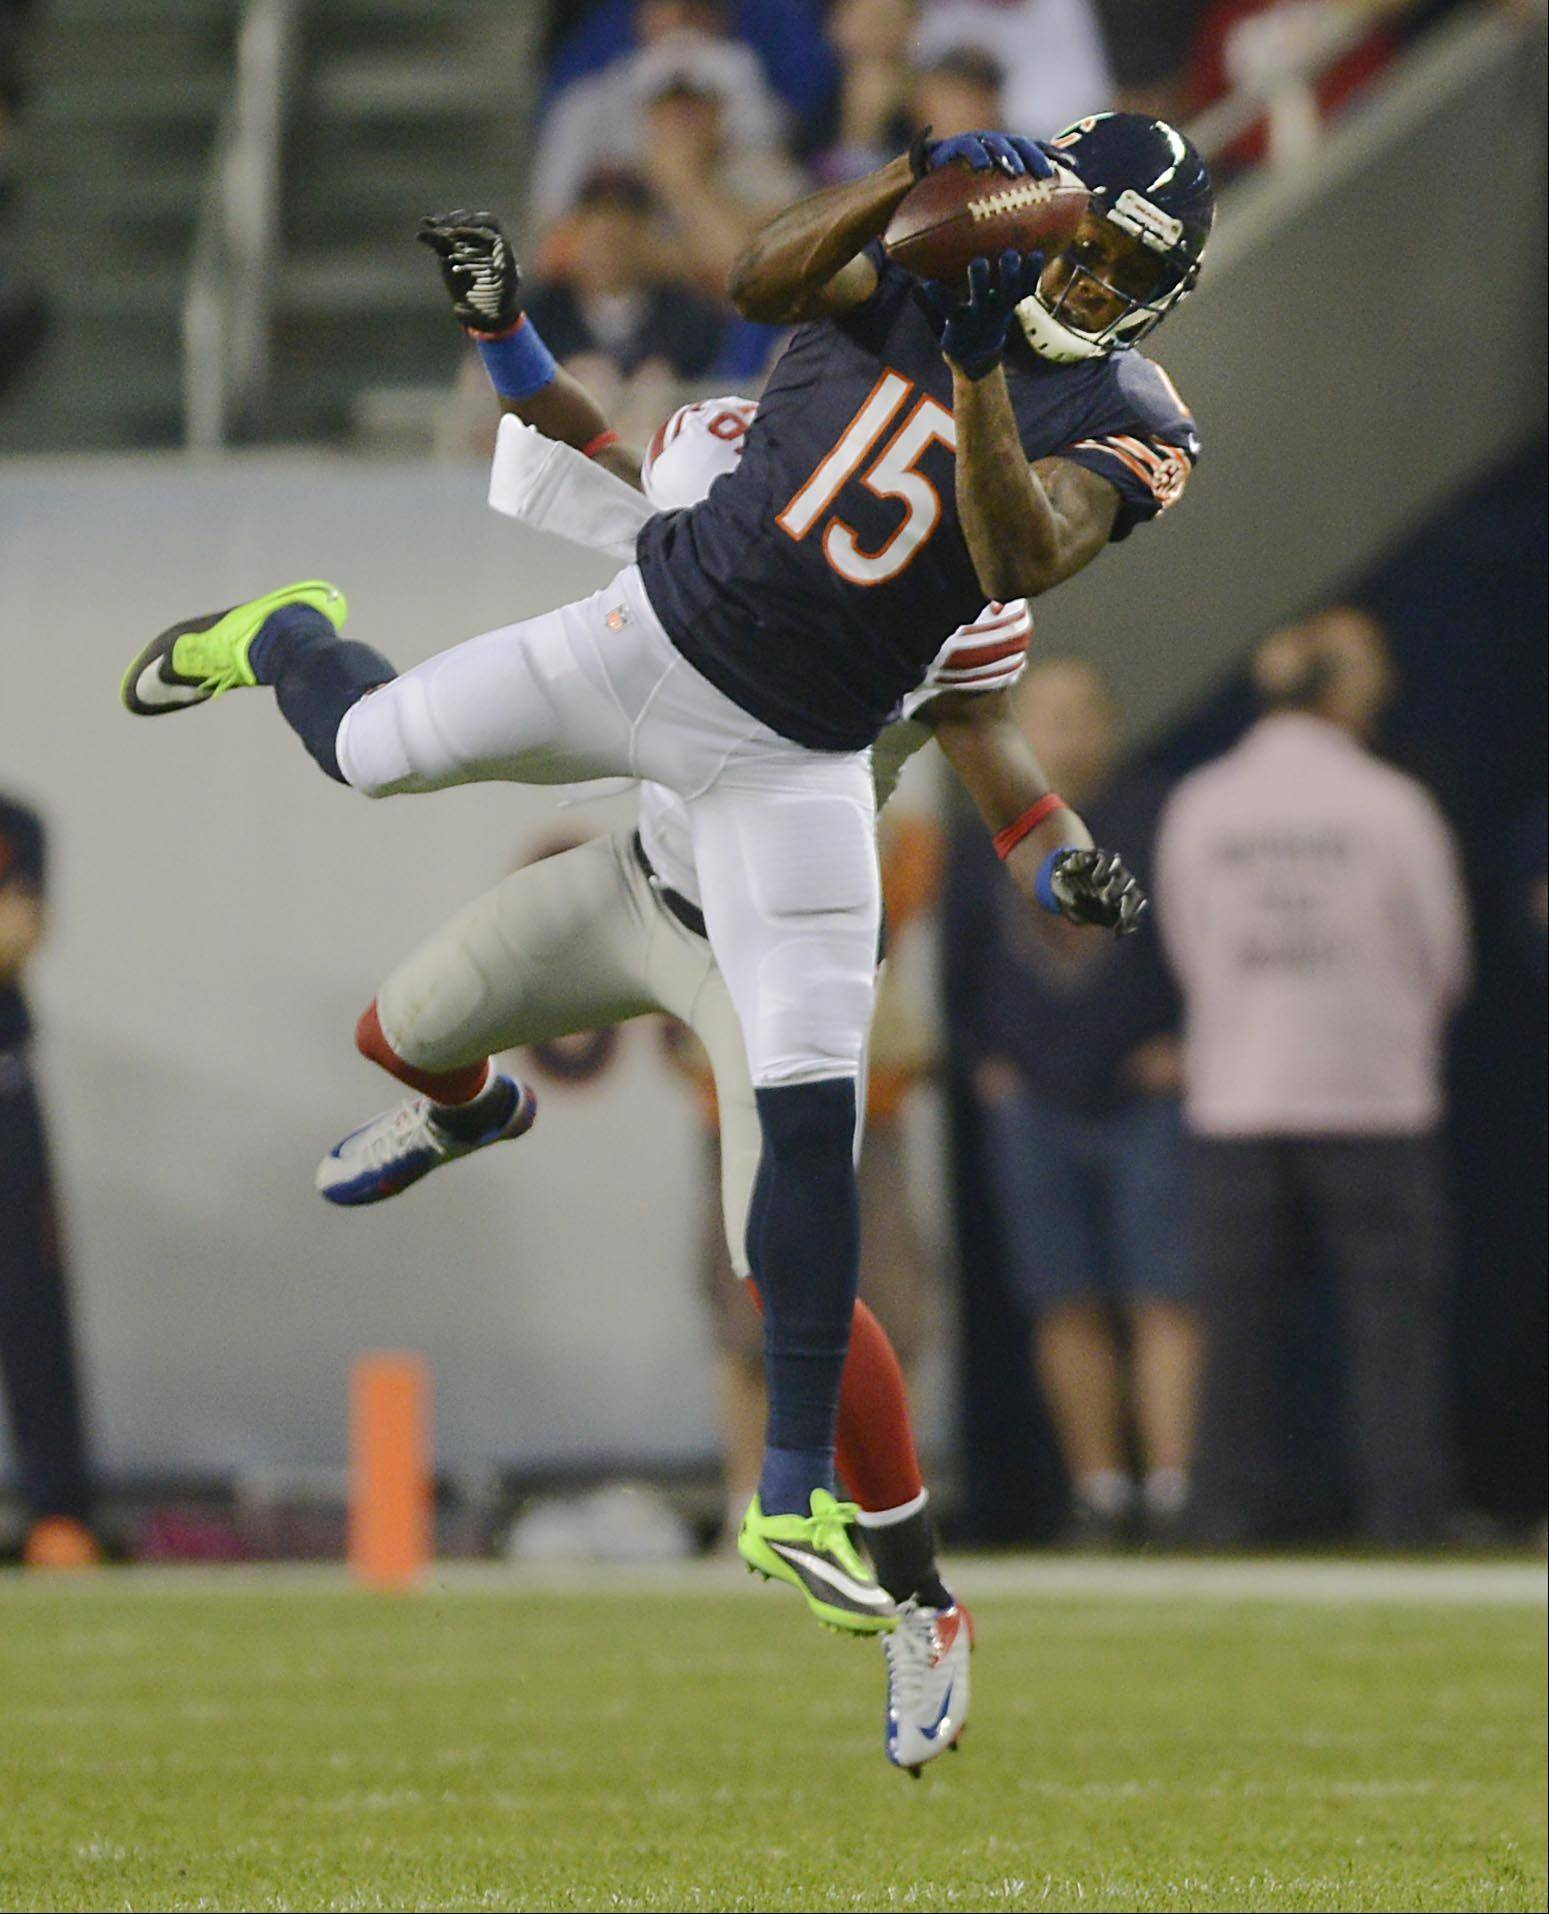 Chicago Bears wide receiver Brandon Marshall makes a catch against New York Giants safety Antrel Rolle.